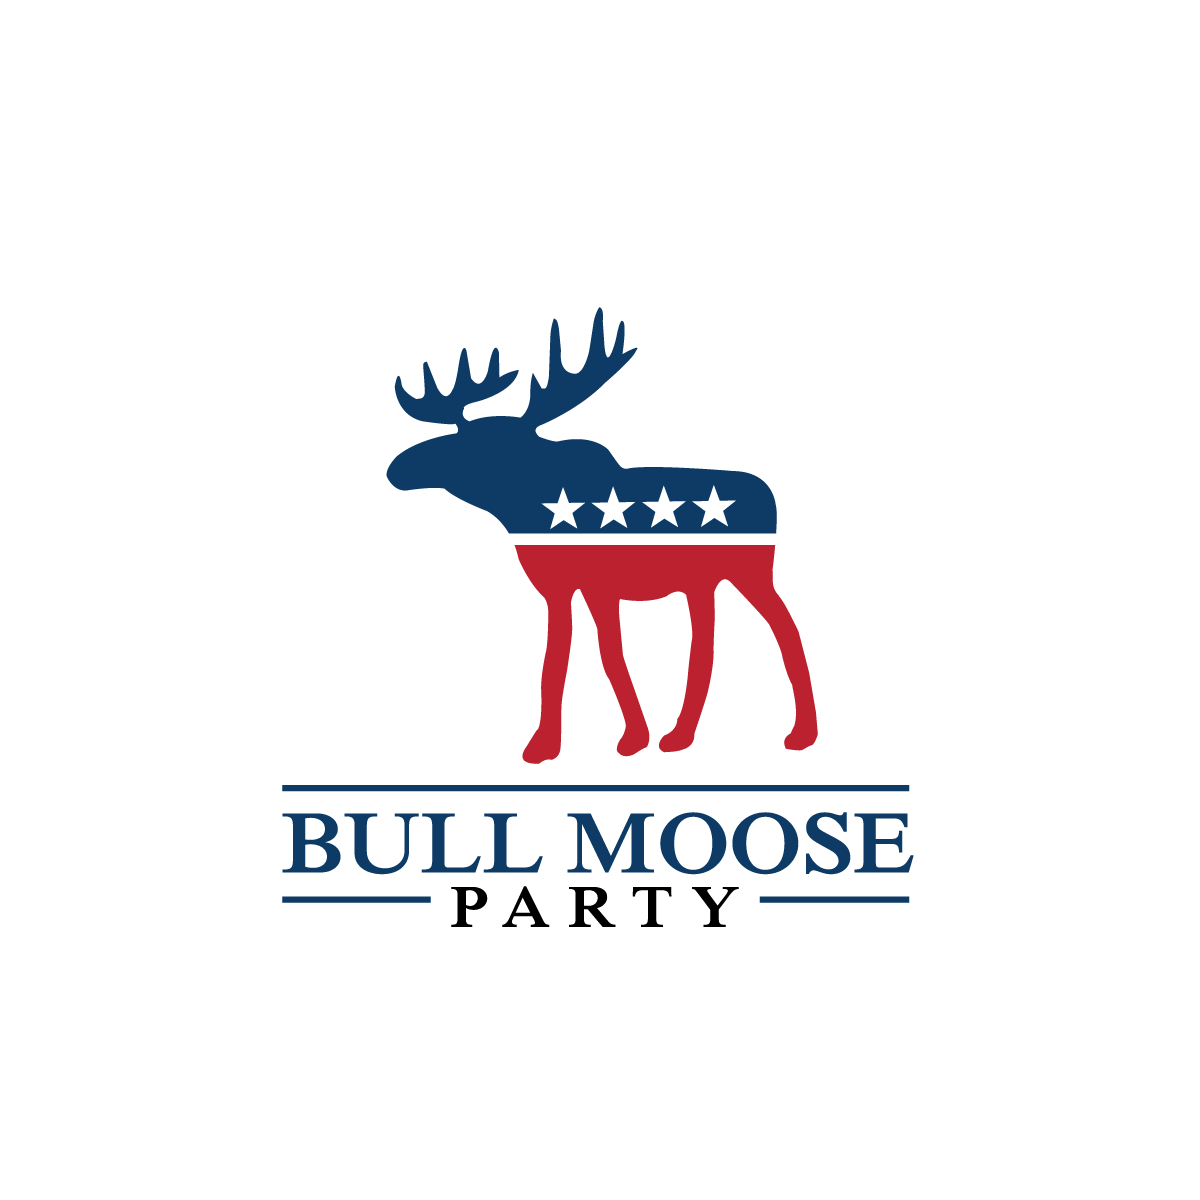 Logo Design by rockin - Entry No. 15 in the Logo Design Contest Progressive Bull Moose Party Logo Design.